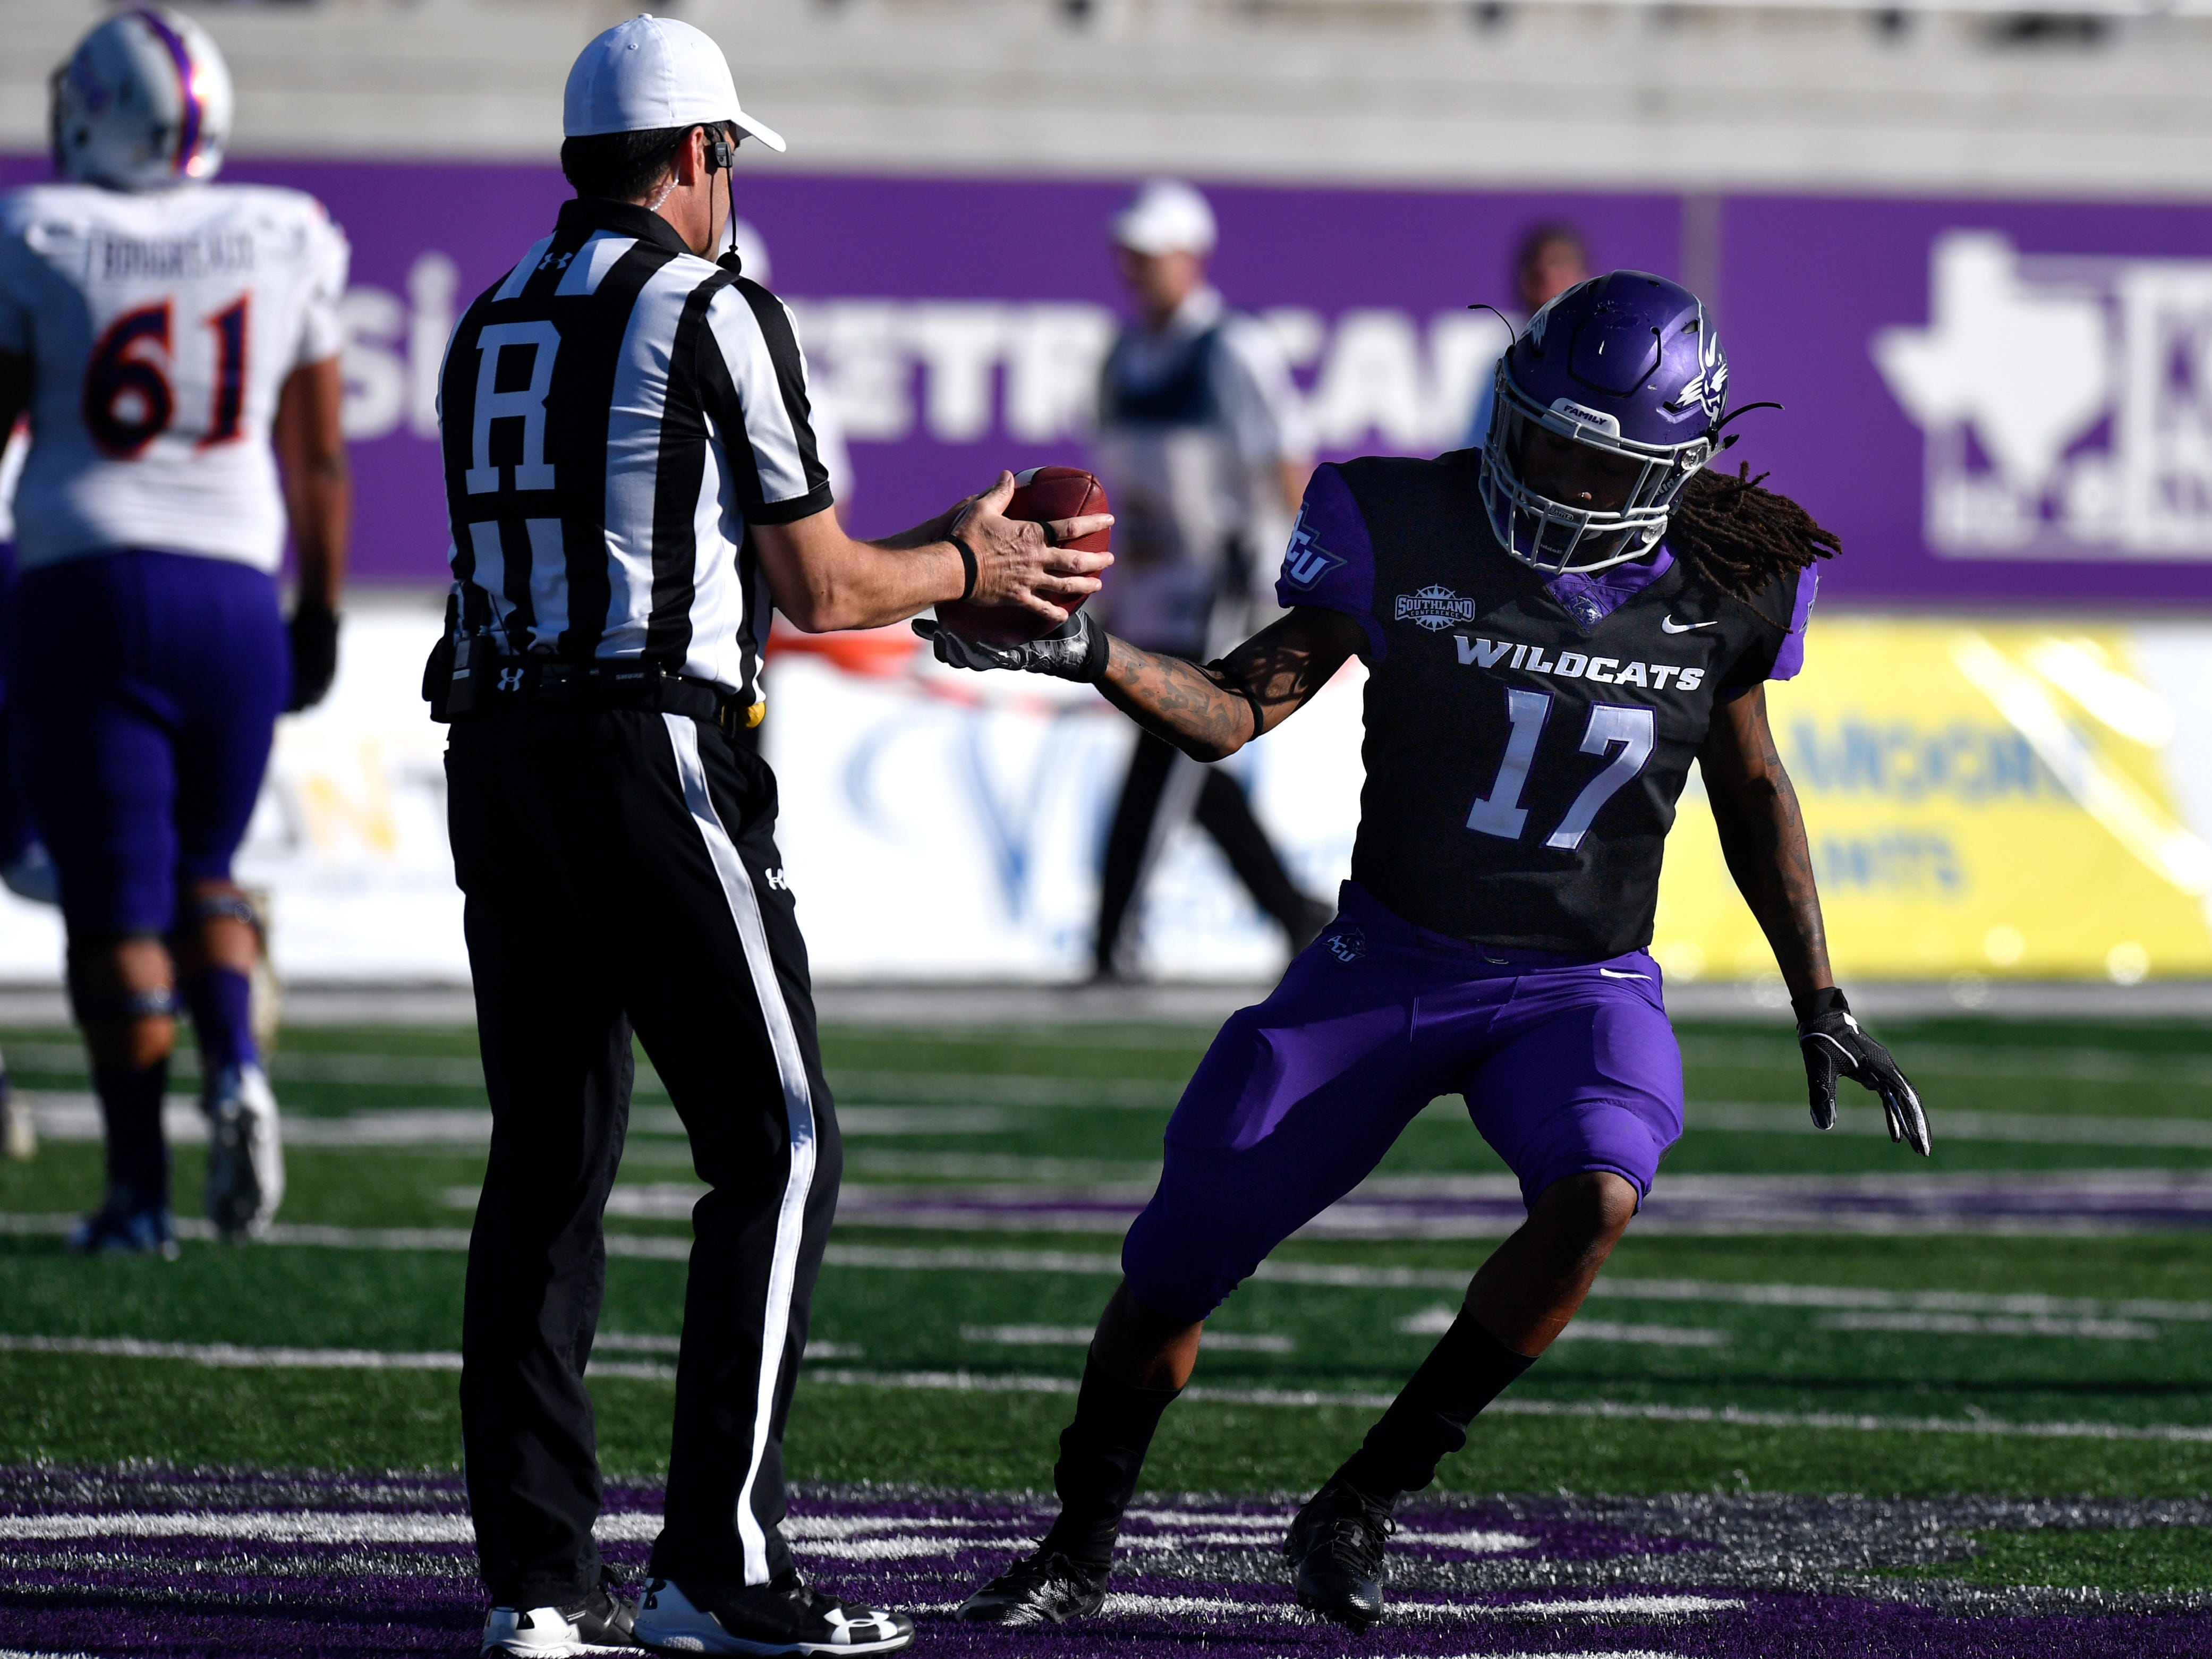 Abilene Christian's Jamar Mack hands the ball to an official after intercepting a Northwestern State pass and giving ACU control of the ball Saturday Nov. 3, 2018. Final score was 49-47, Abilene Christian University.